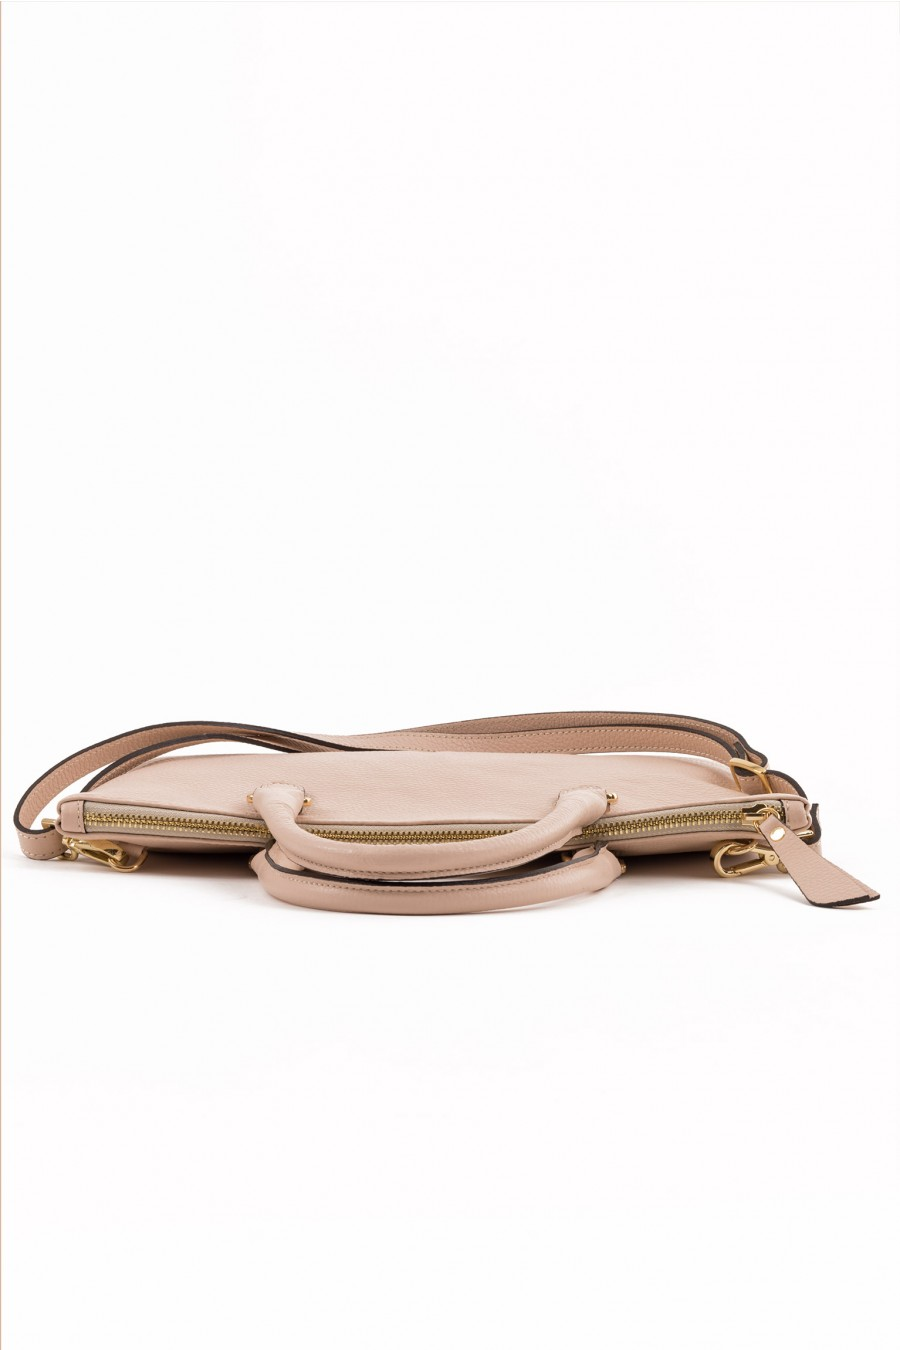 Pale pink with shoulder belt